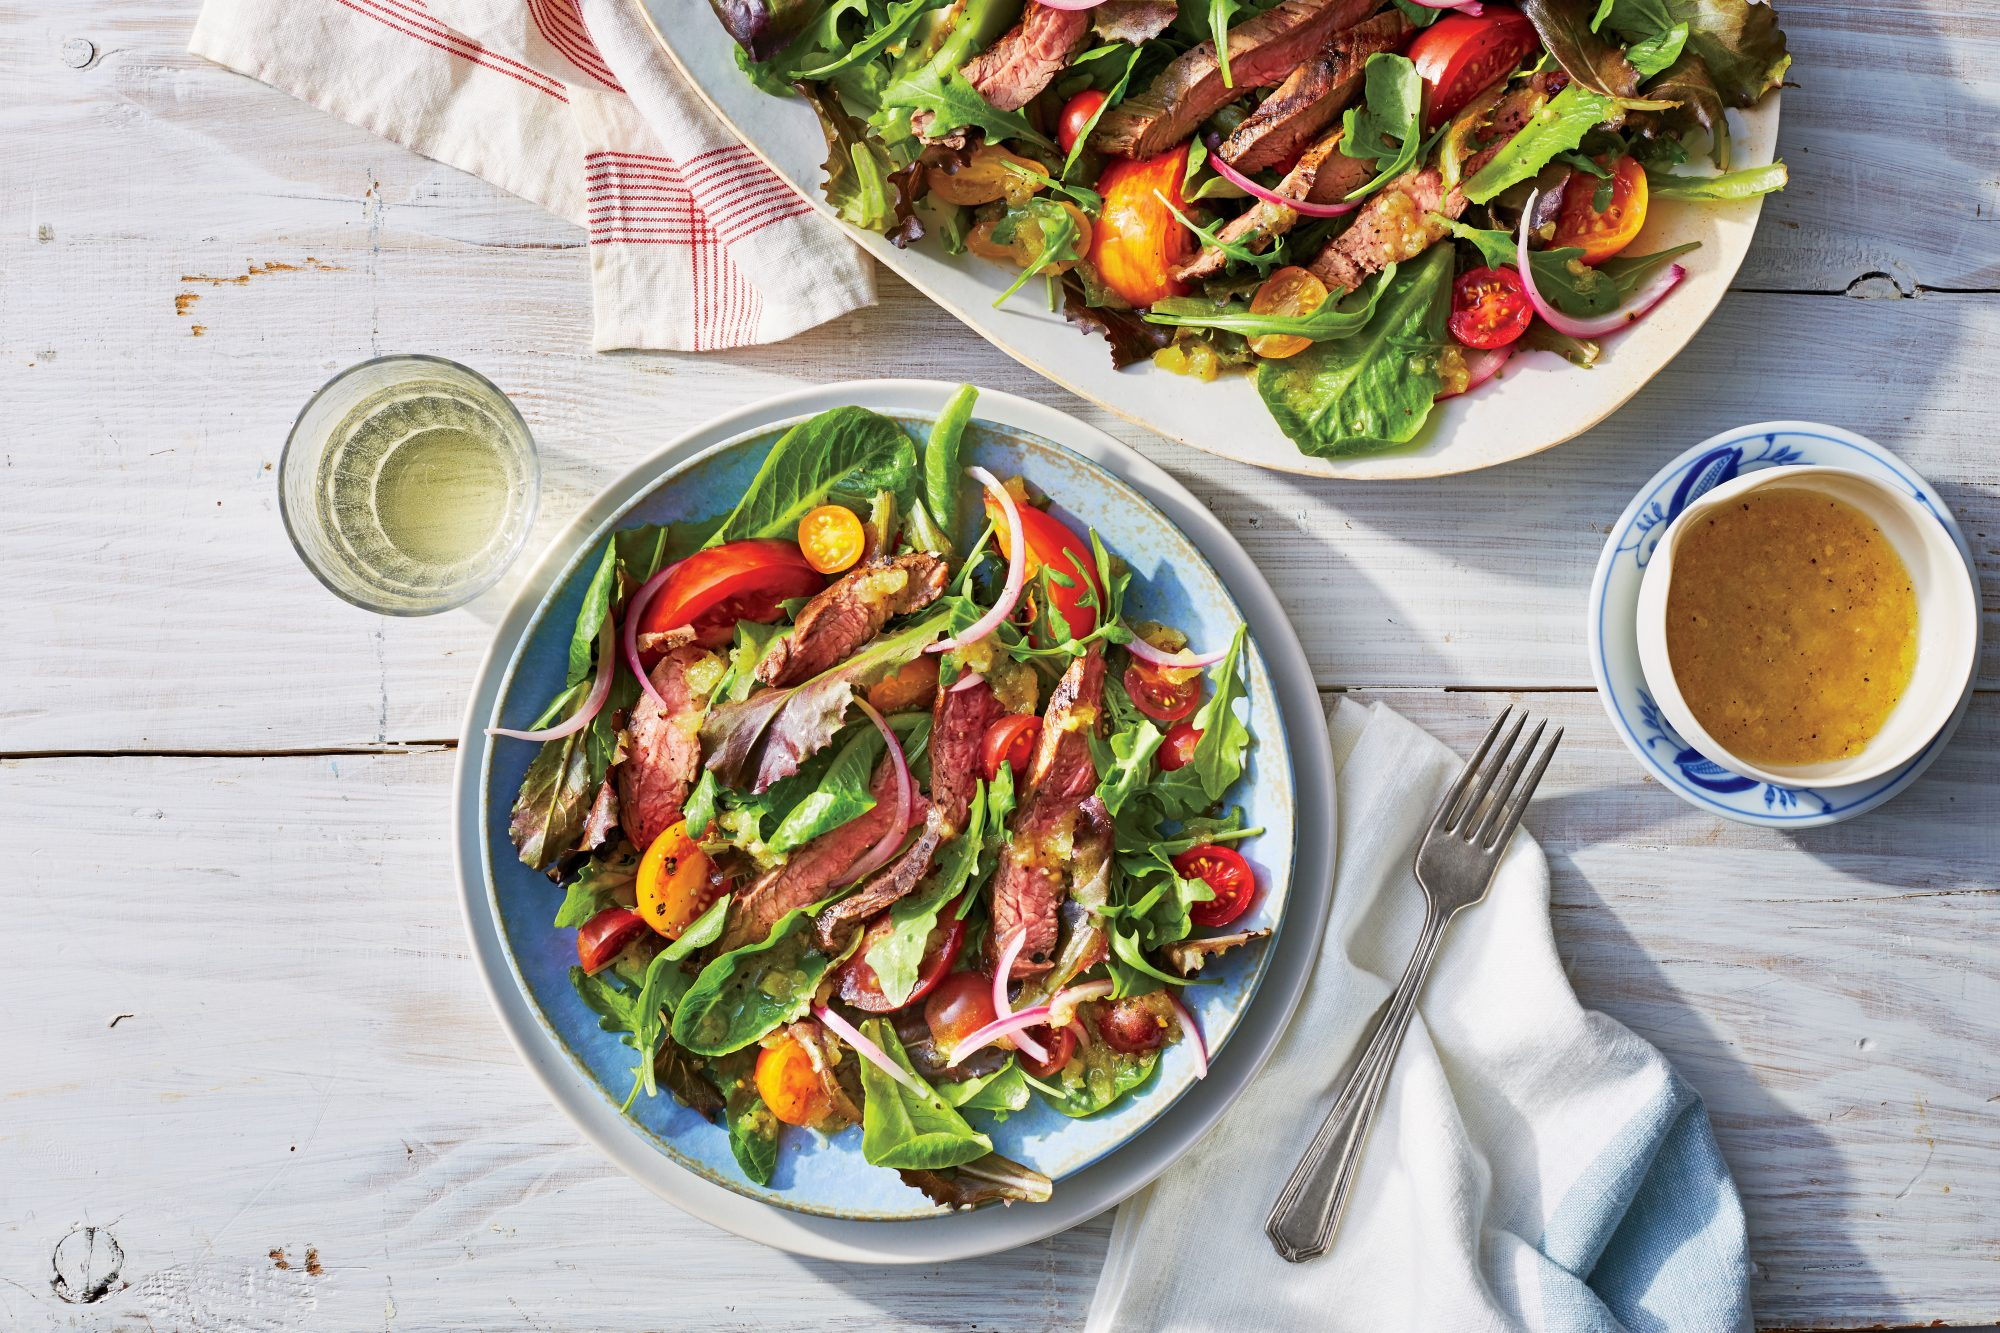 Grilled Steak Salad with Green Tomato Vinaigrette